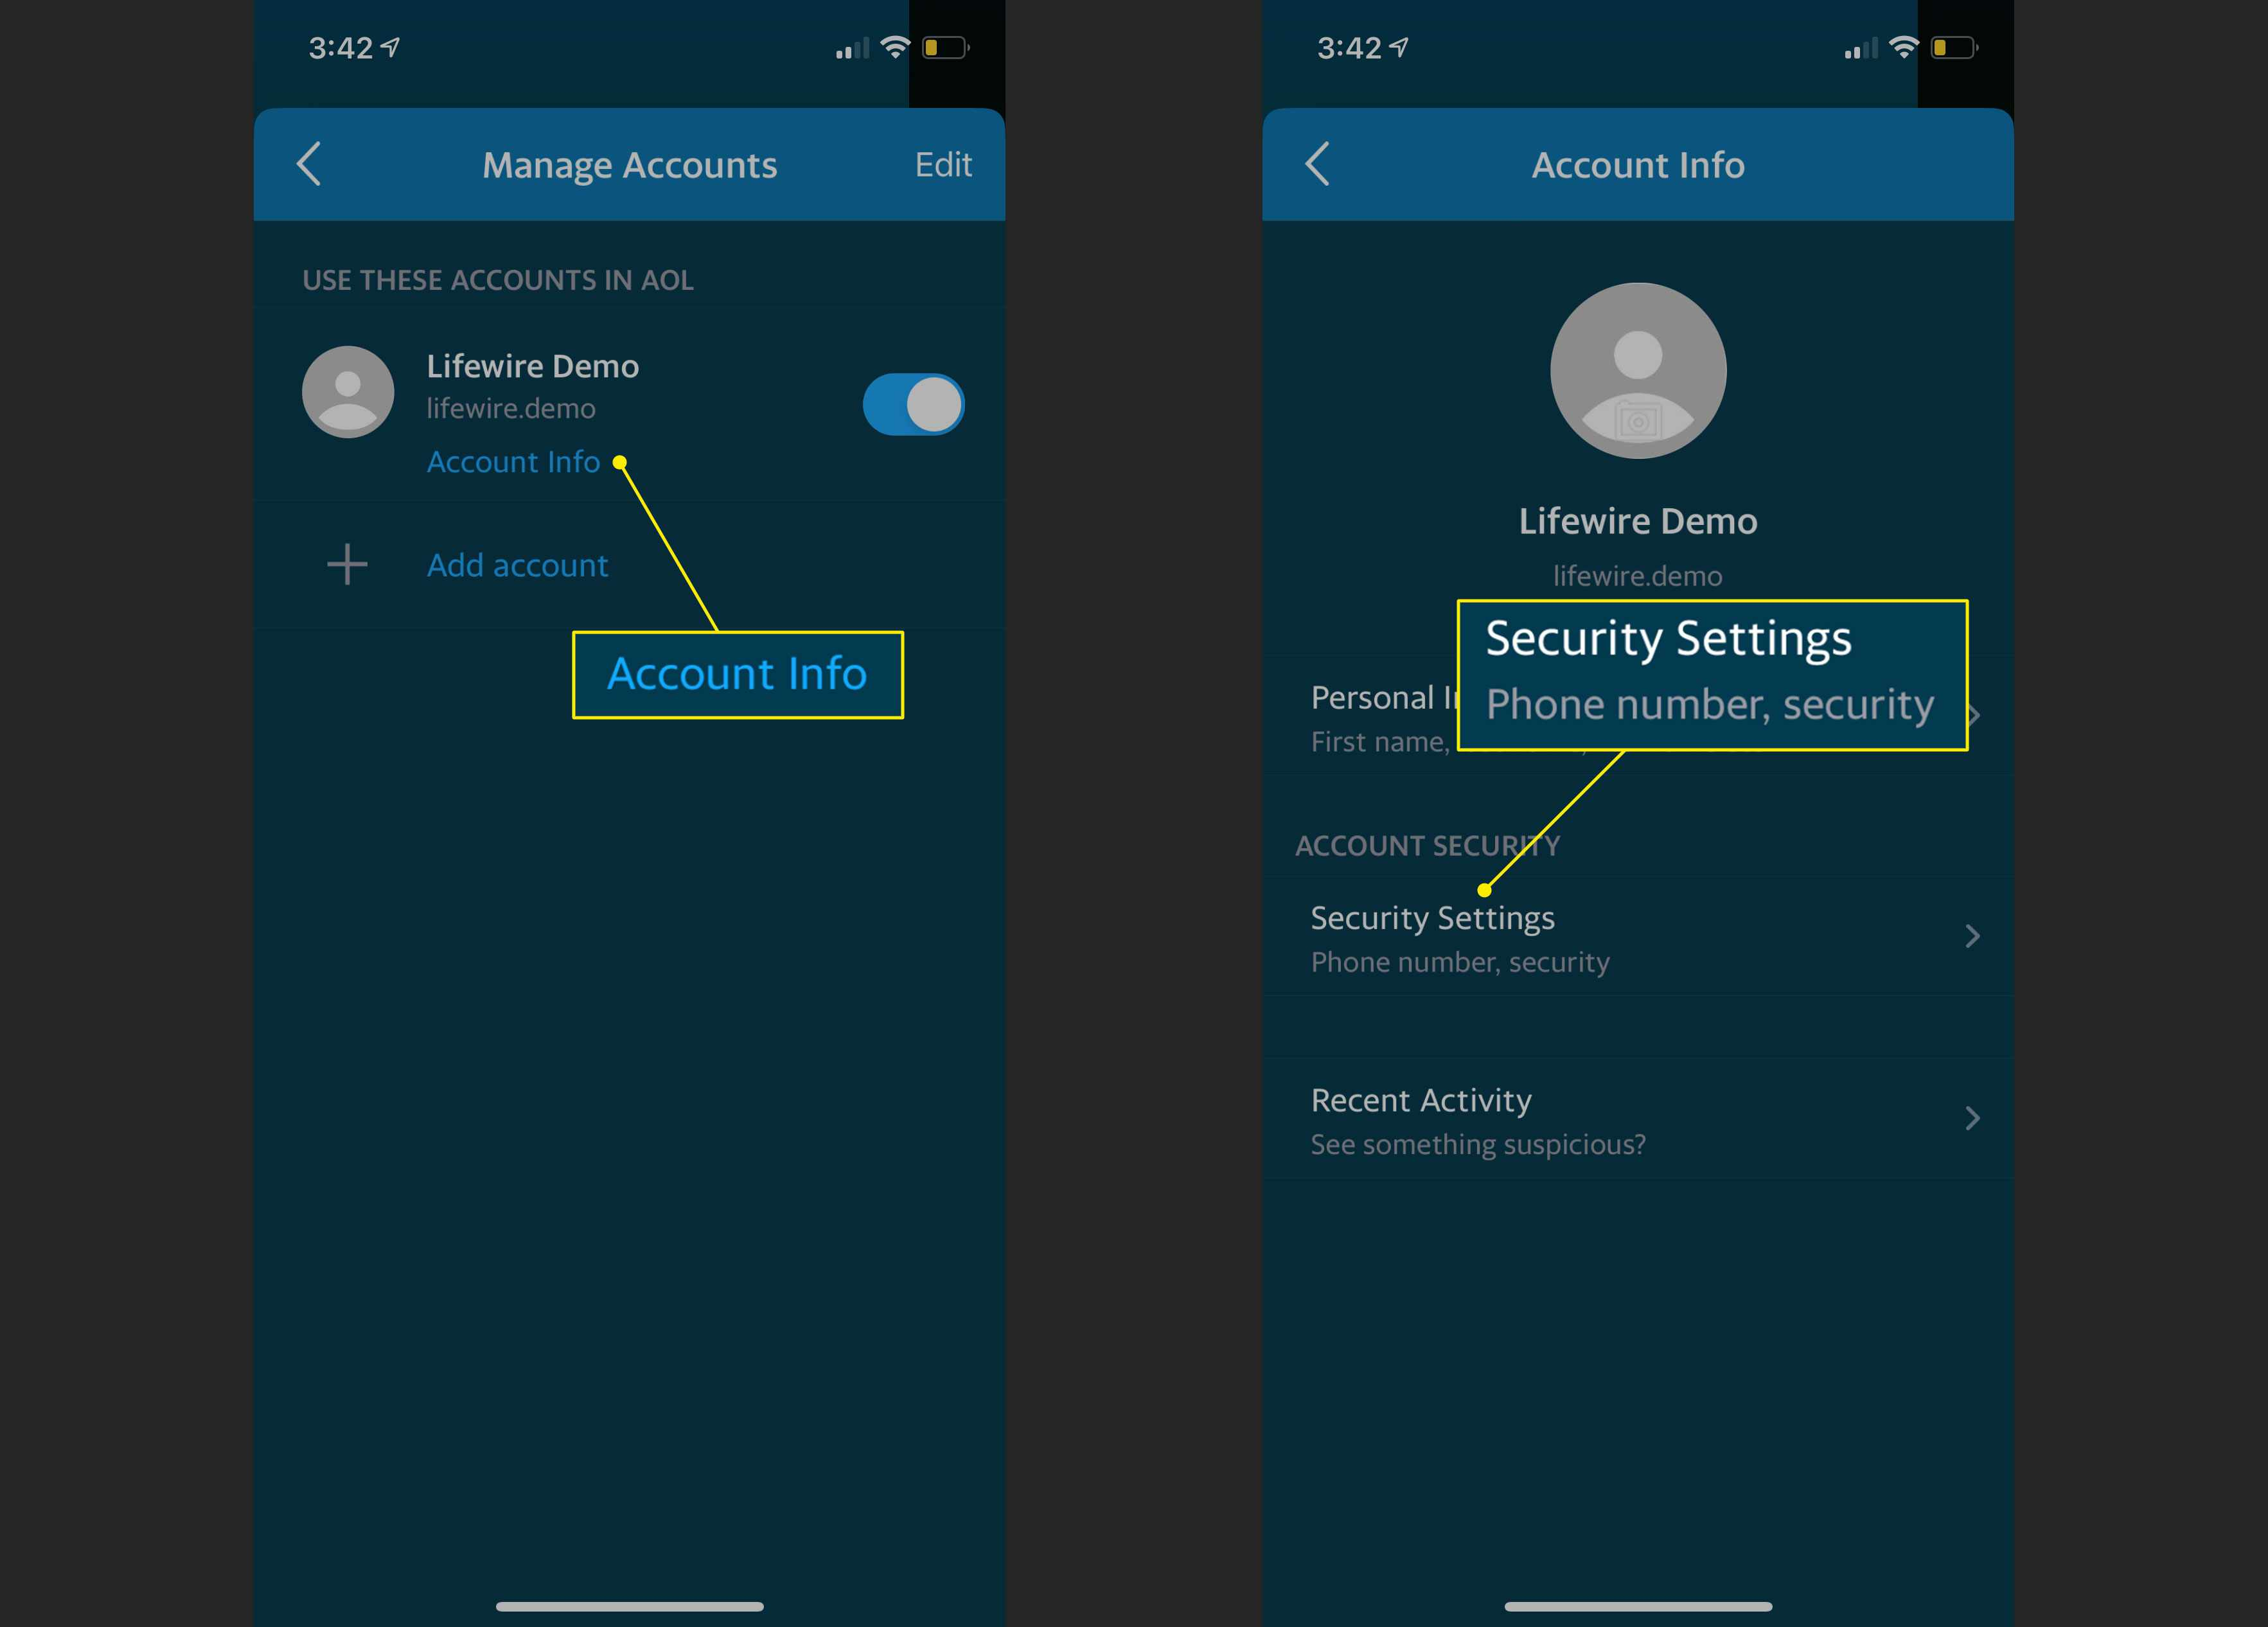 Account info and Security Settings in the AOL app